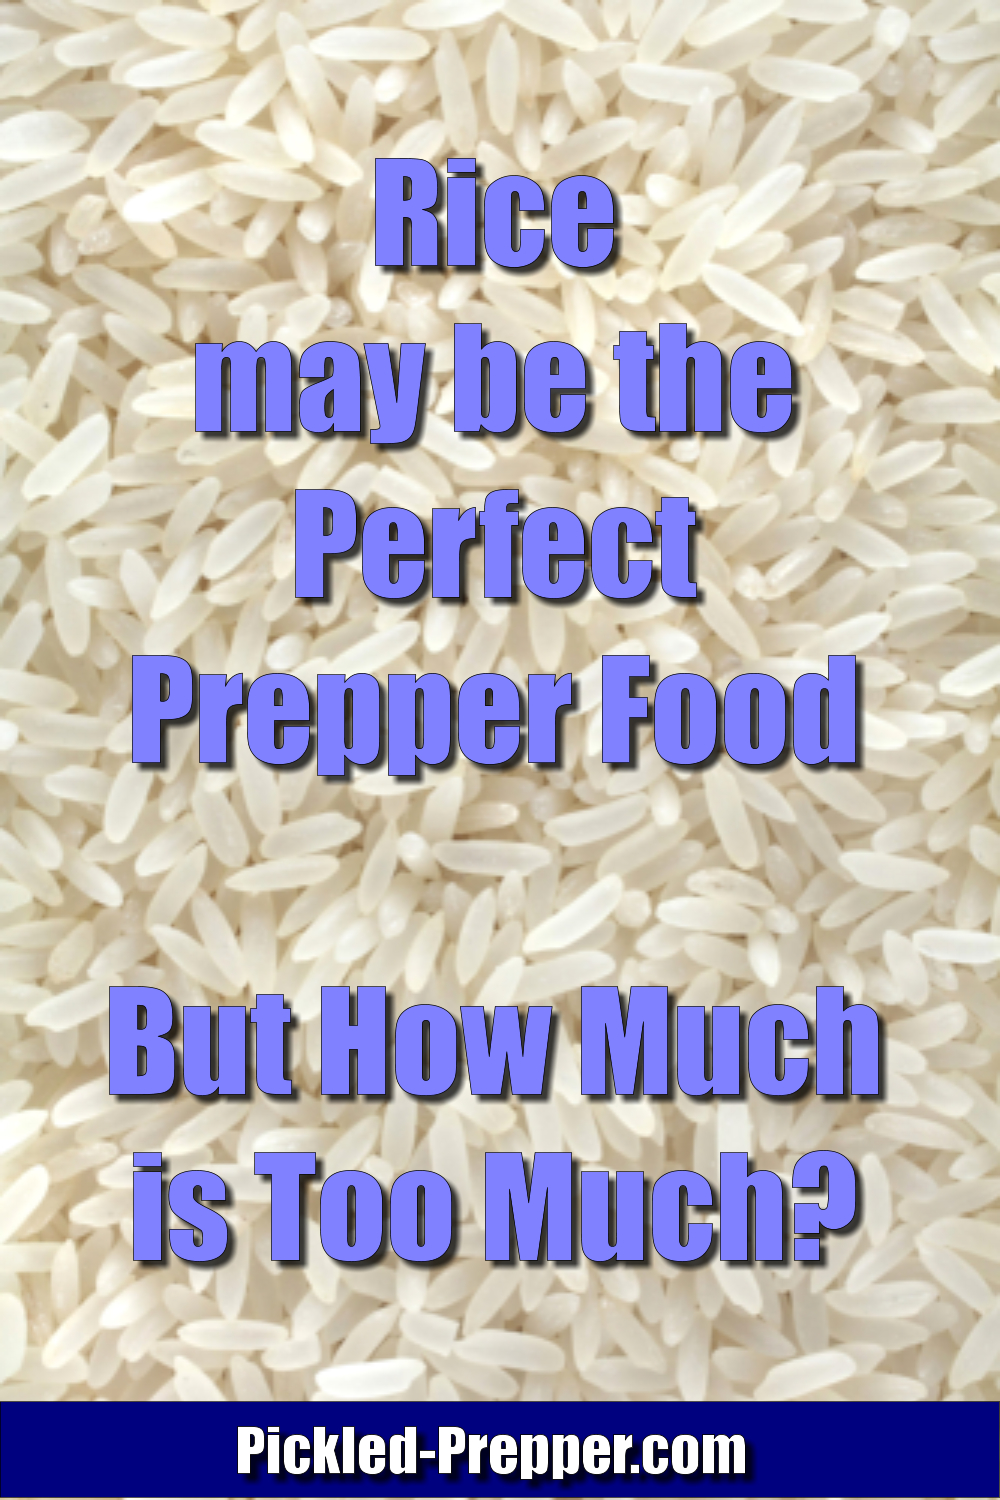 Can a Prepper Have Too Much Rice?